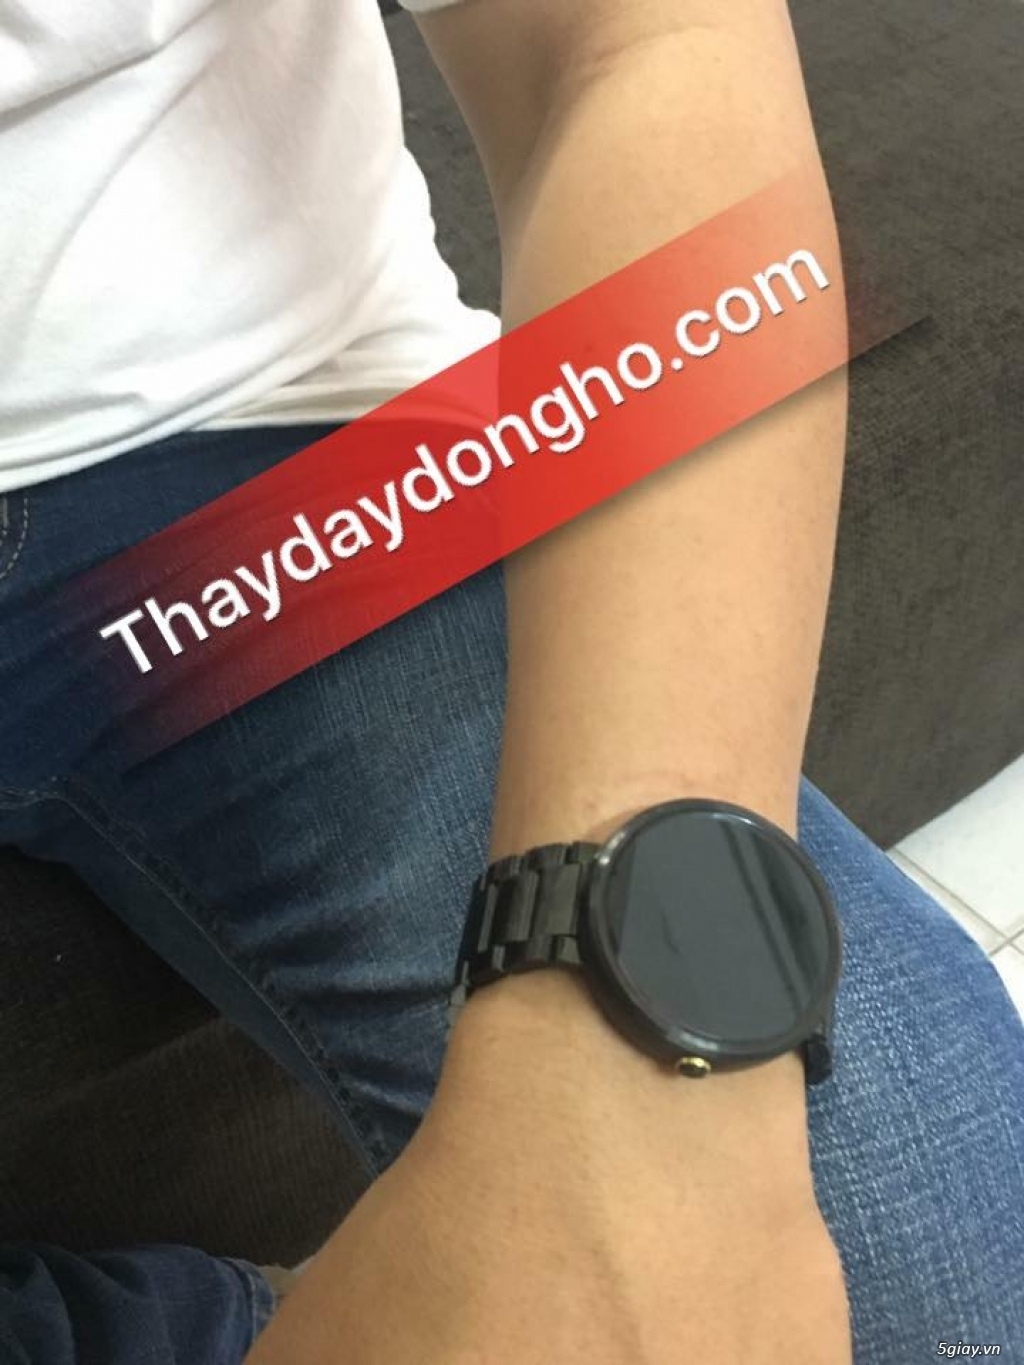 Thay dây đồng hồ Gear s2 - s3, LG watch, moto 360, Apple , fitbit.... - 20